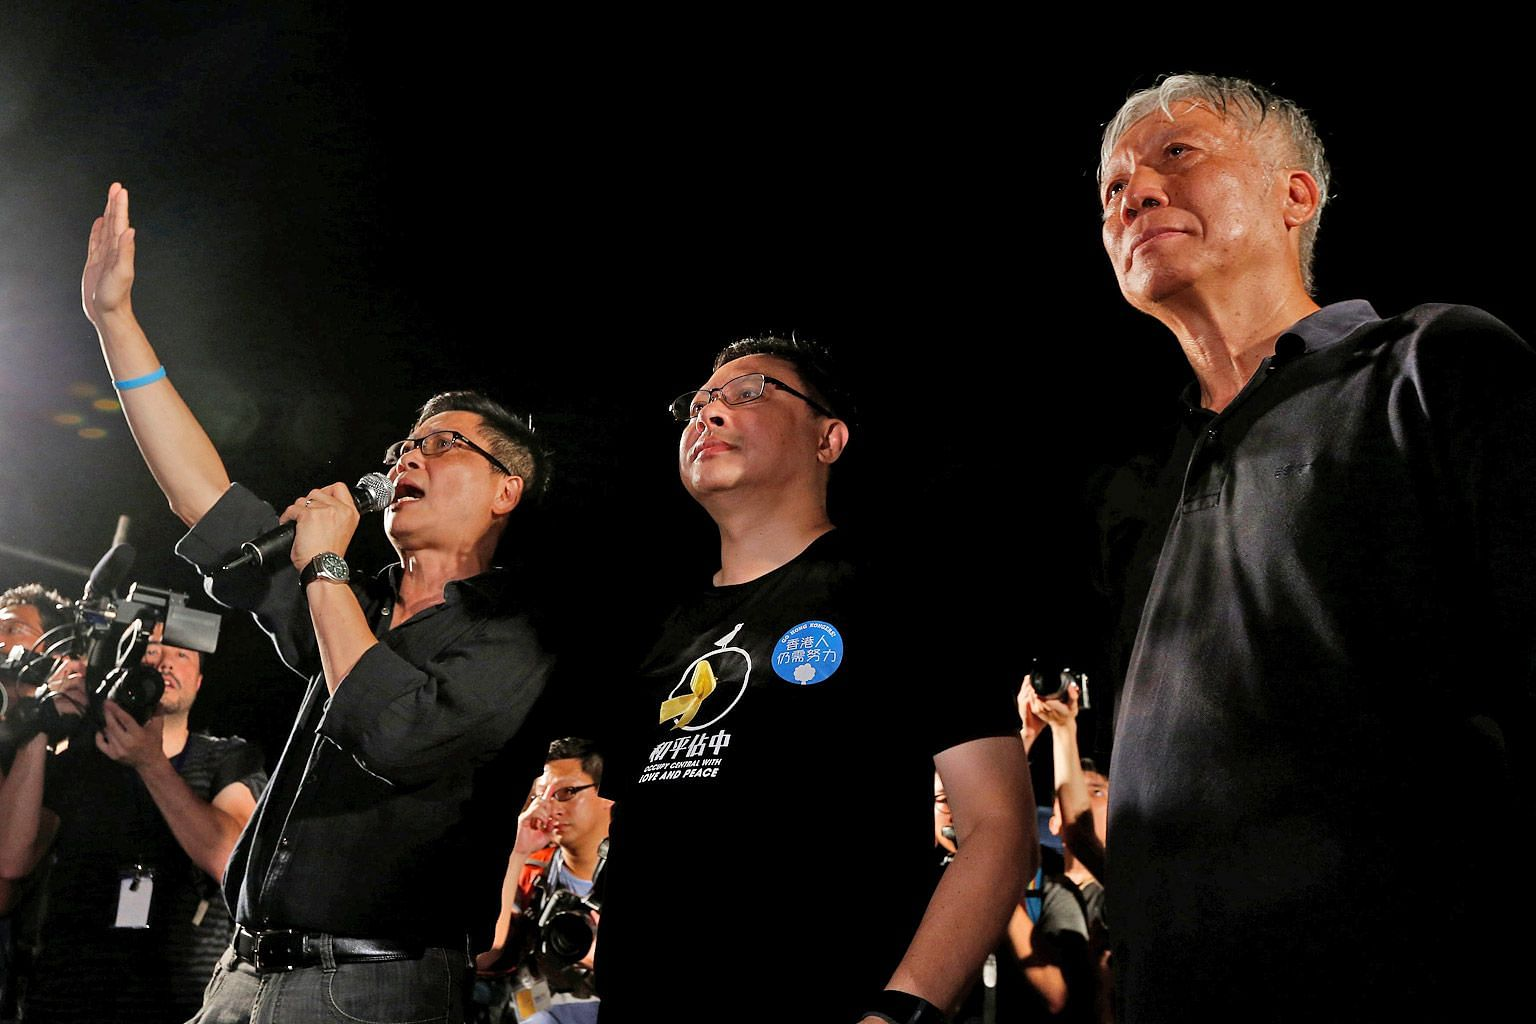 Occupy Central founders (from left) Chan Kin Man, Benny Tai and Chu Yiu Ming kicking off the movement in Hong Kong on Aug 31, 2014.